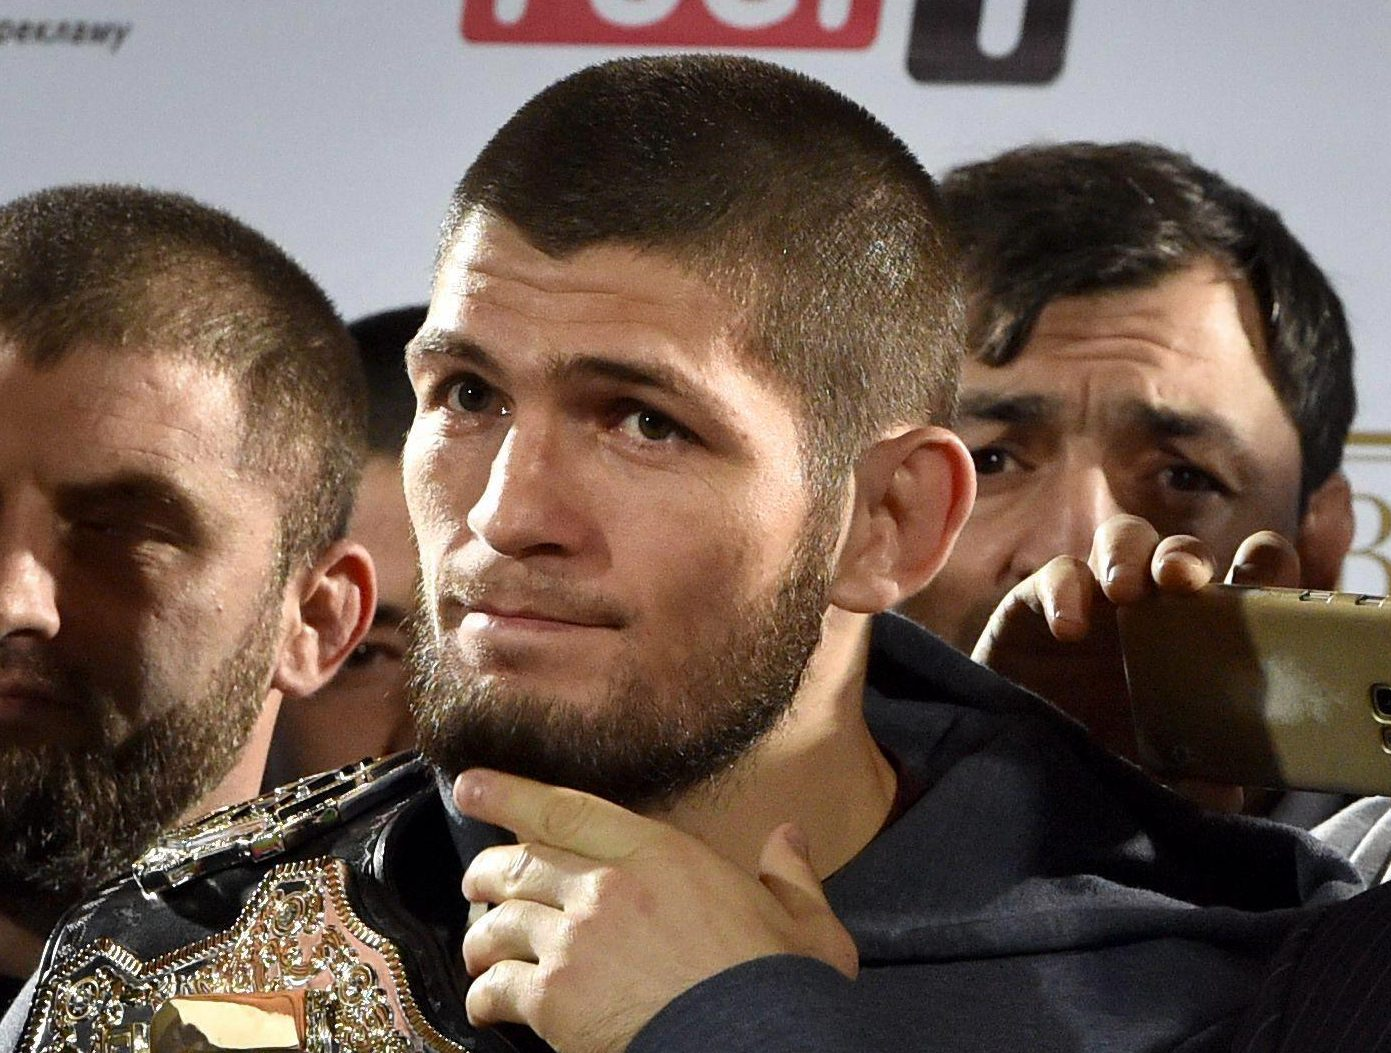 Khabib Nurmagomedov could face a ban for post-fight UFC brawl